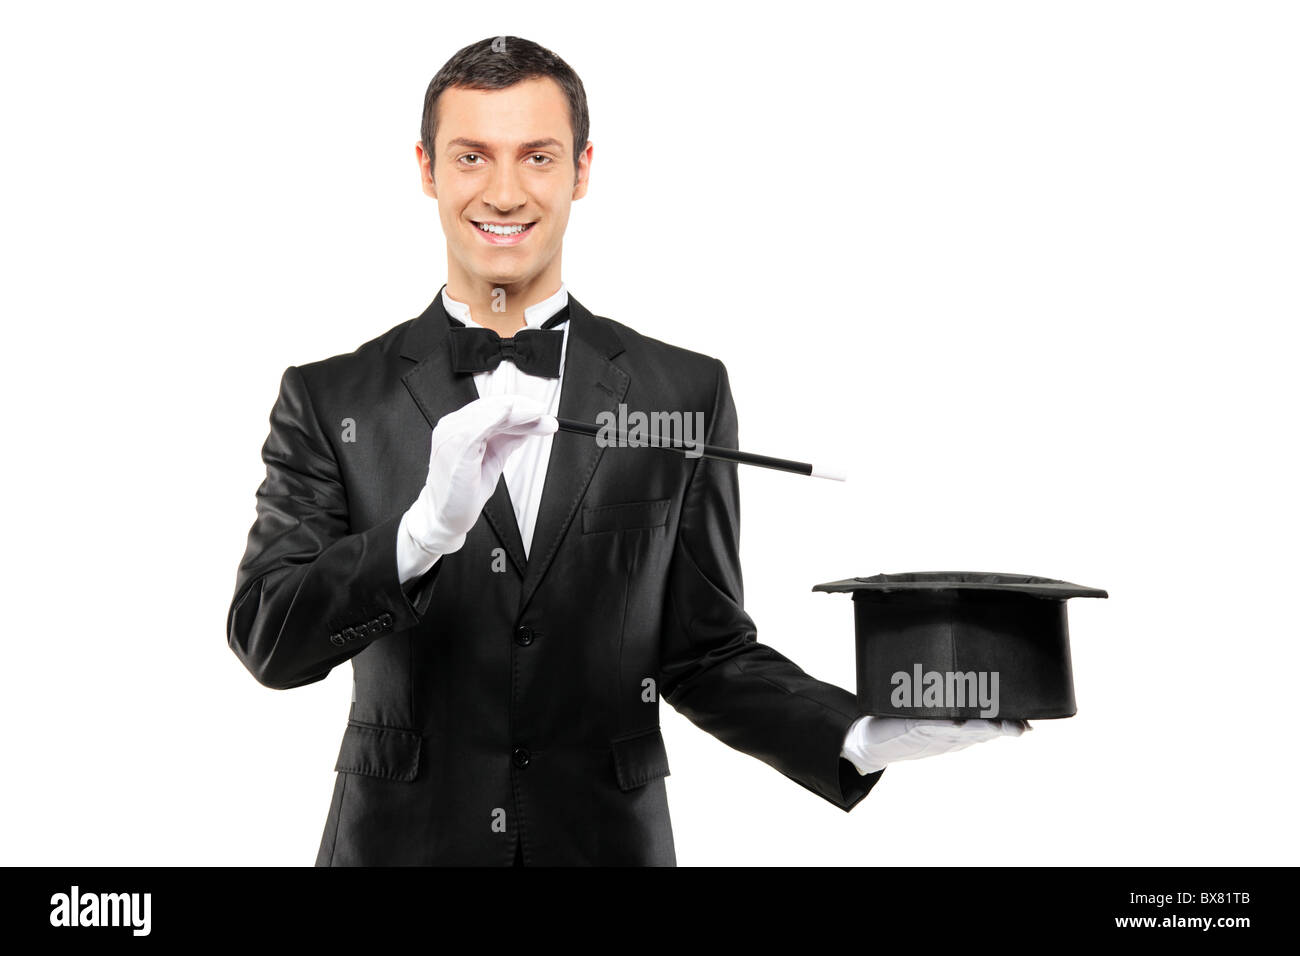 A magician in a black suit holding an empty top hat and magic wand - Stock Image